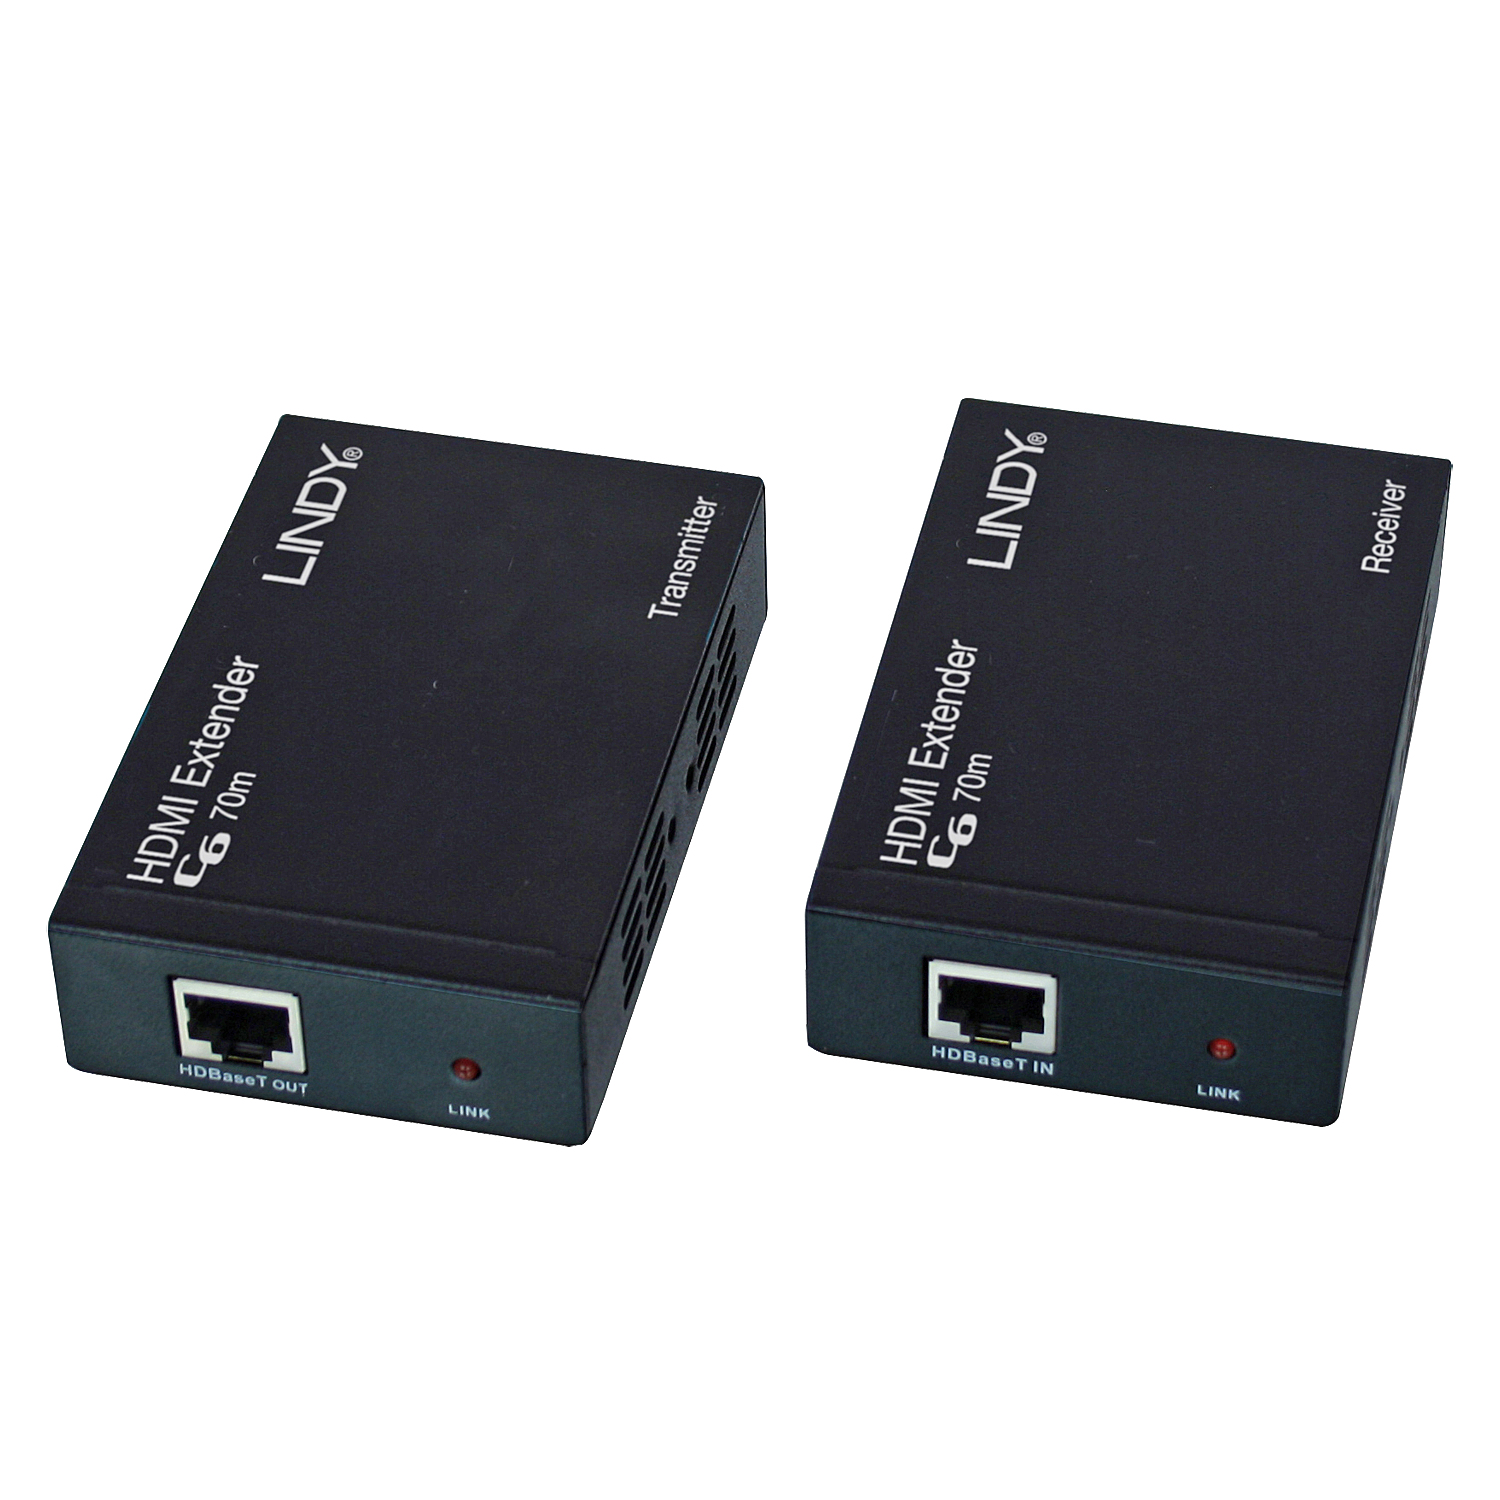 Lindy 38139 AV transmitter & receiver Black AV extender